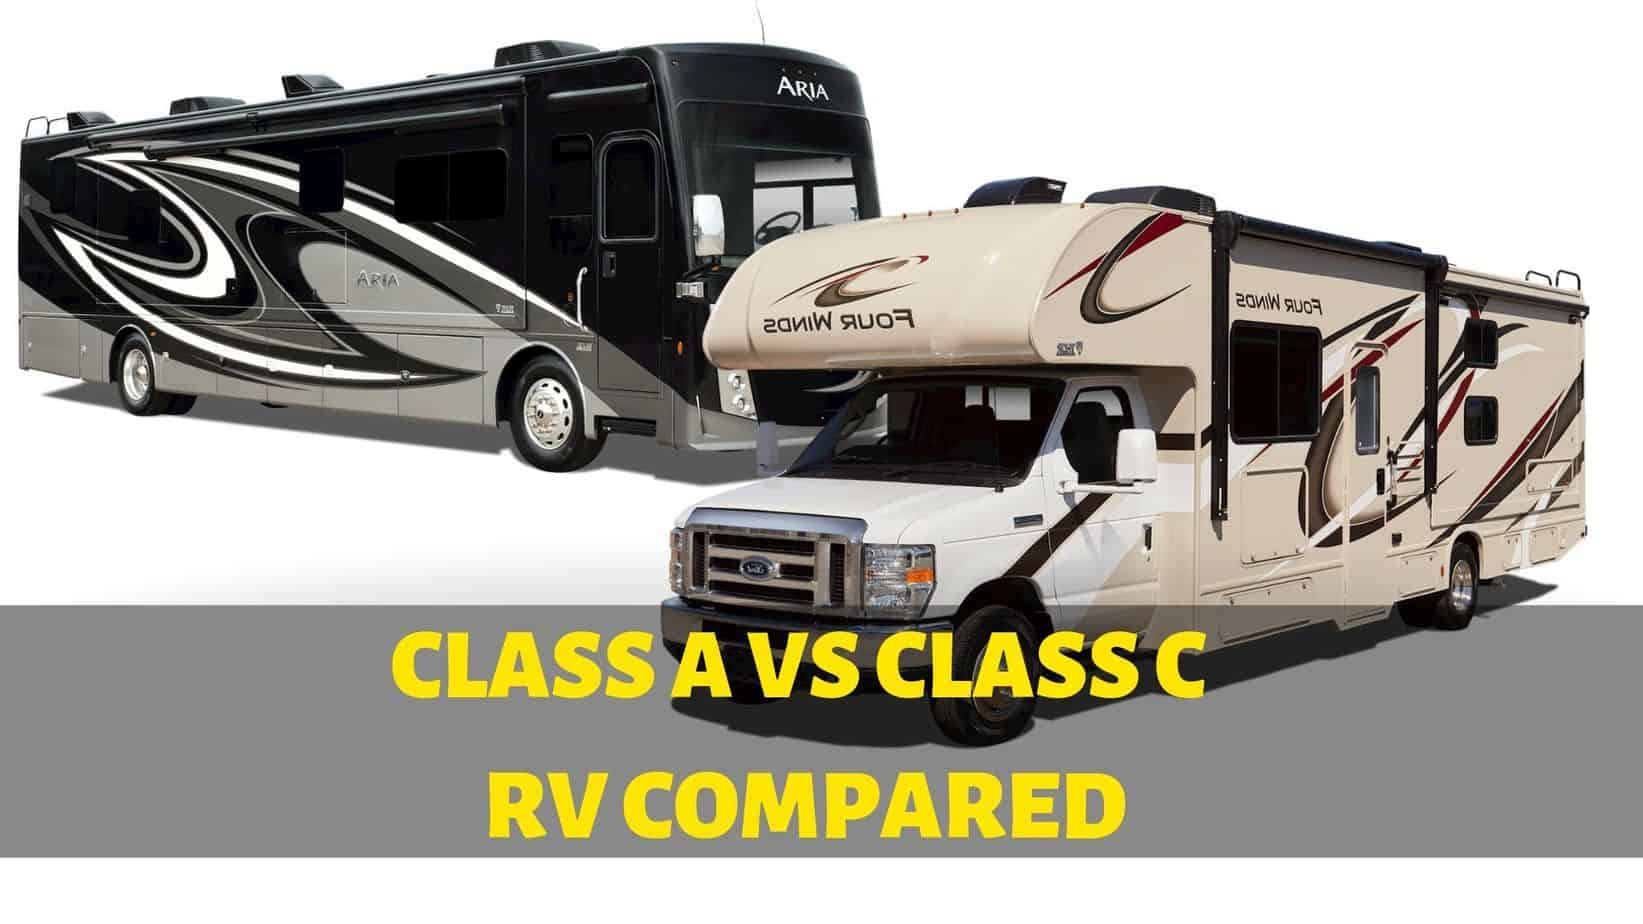 Class A vs Class C RV – What's the Difference?